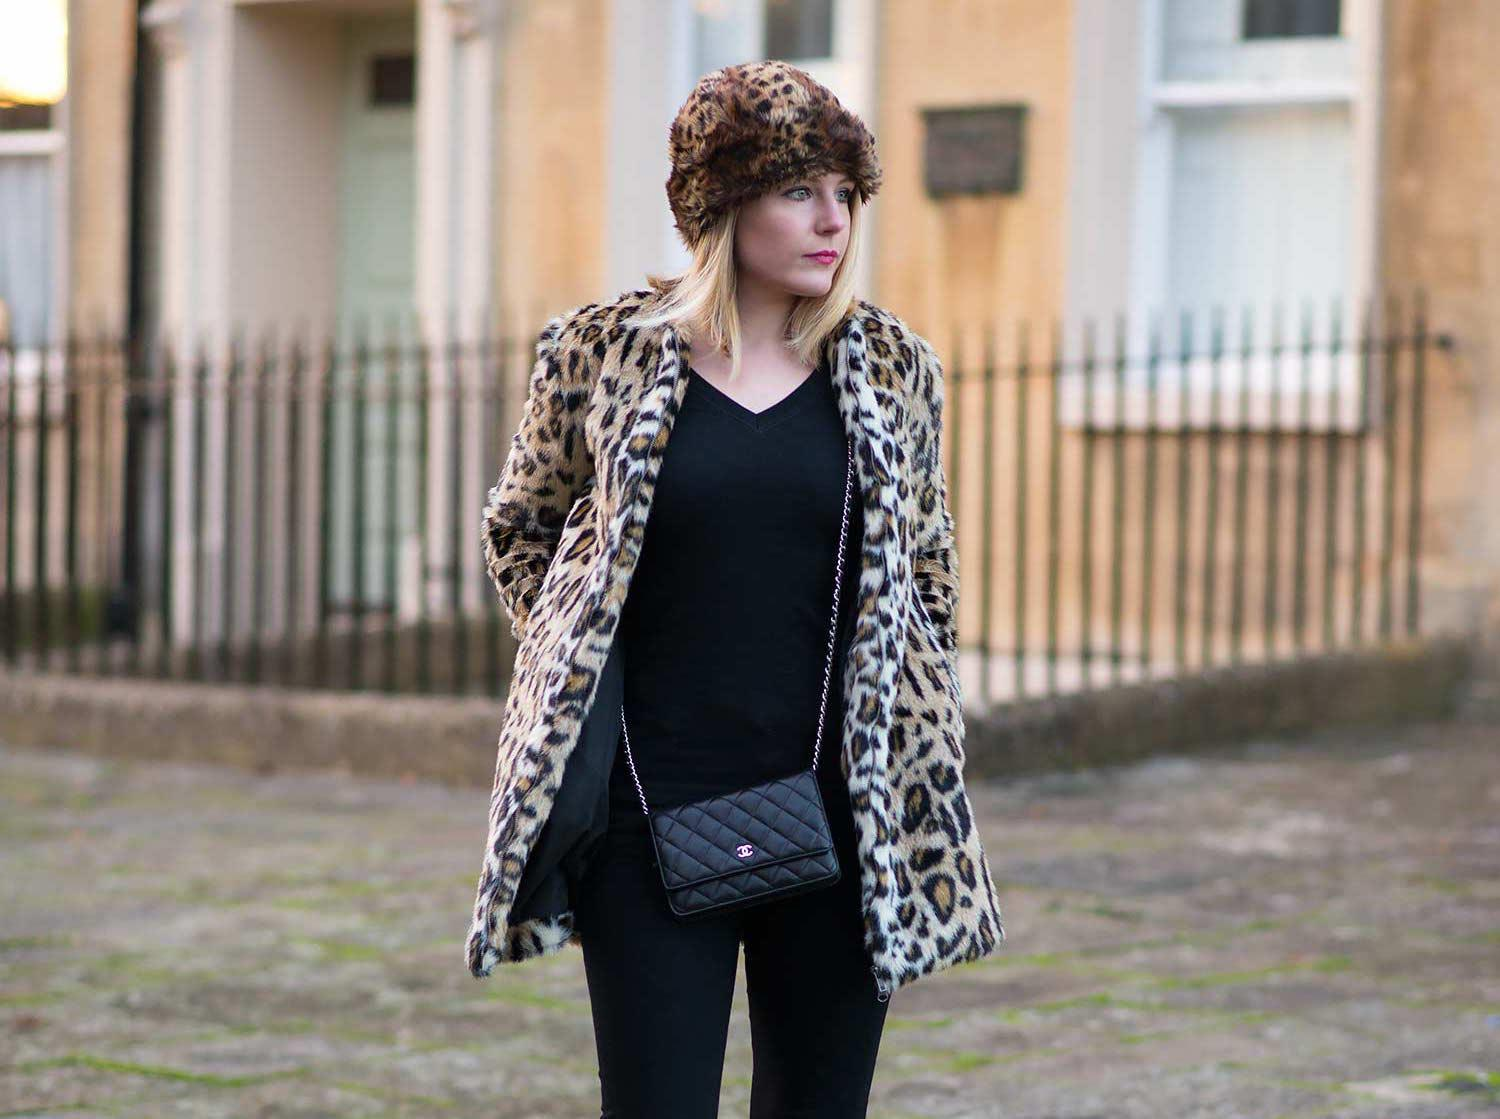 lorna-burford-uk-fashion-blogger-street-style-leopard-copy